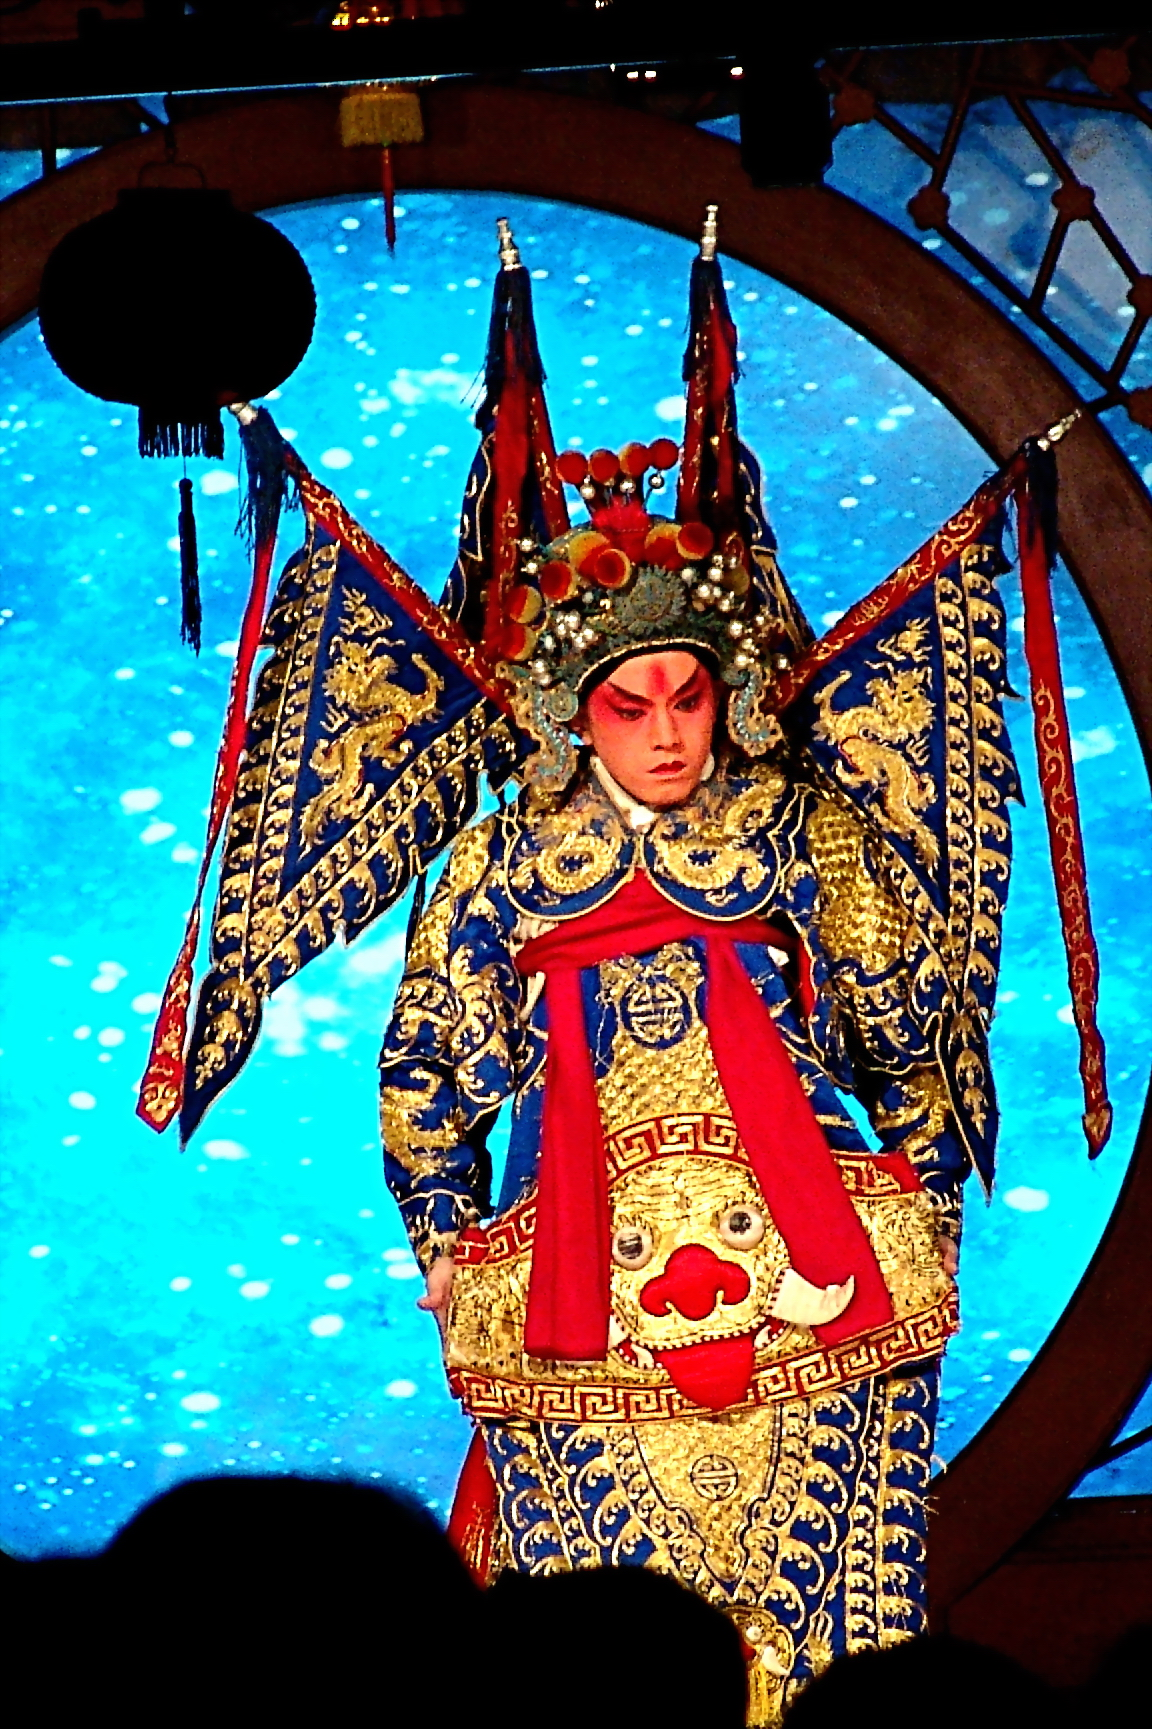 a history of the beijing opera Beijing opera has an over 200 -year history the main melodies originated from xipi and erhuang, in anhui and hubei respectively and over time techniques from many other local operas were incorporated.